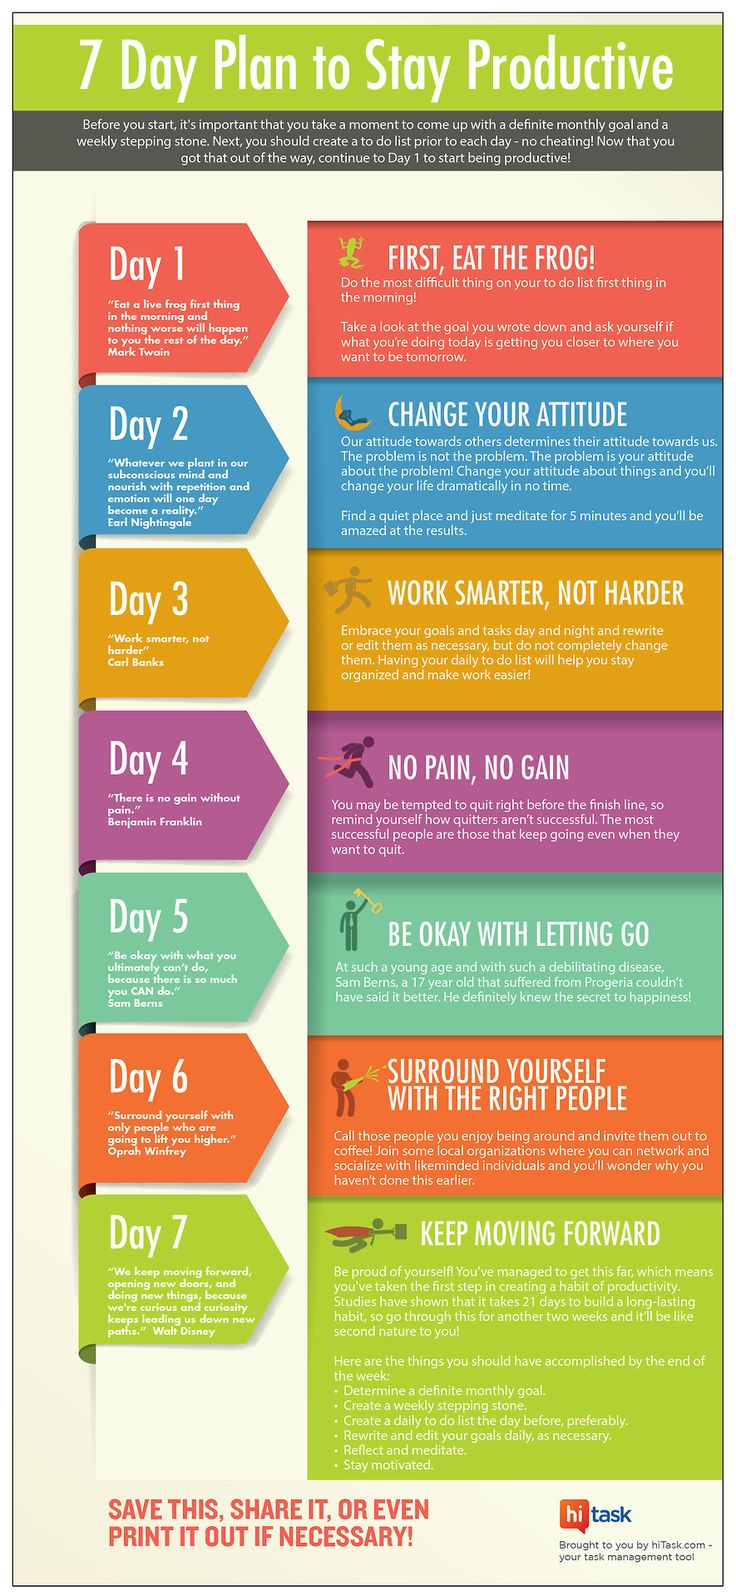 7 Day Productivity Plan